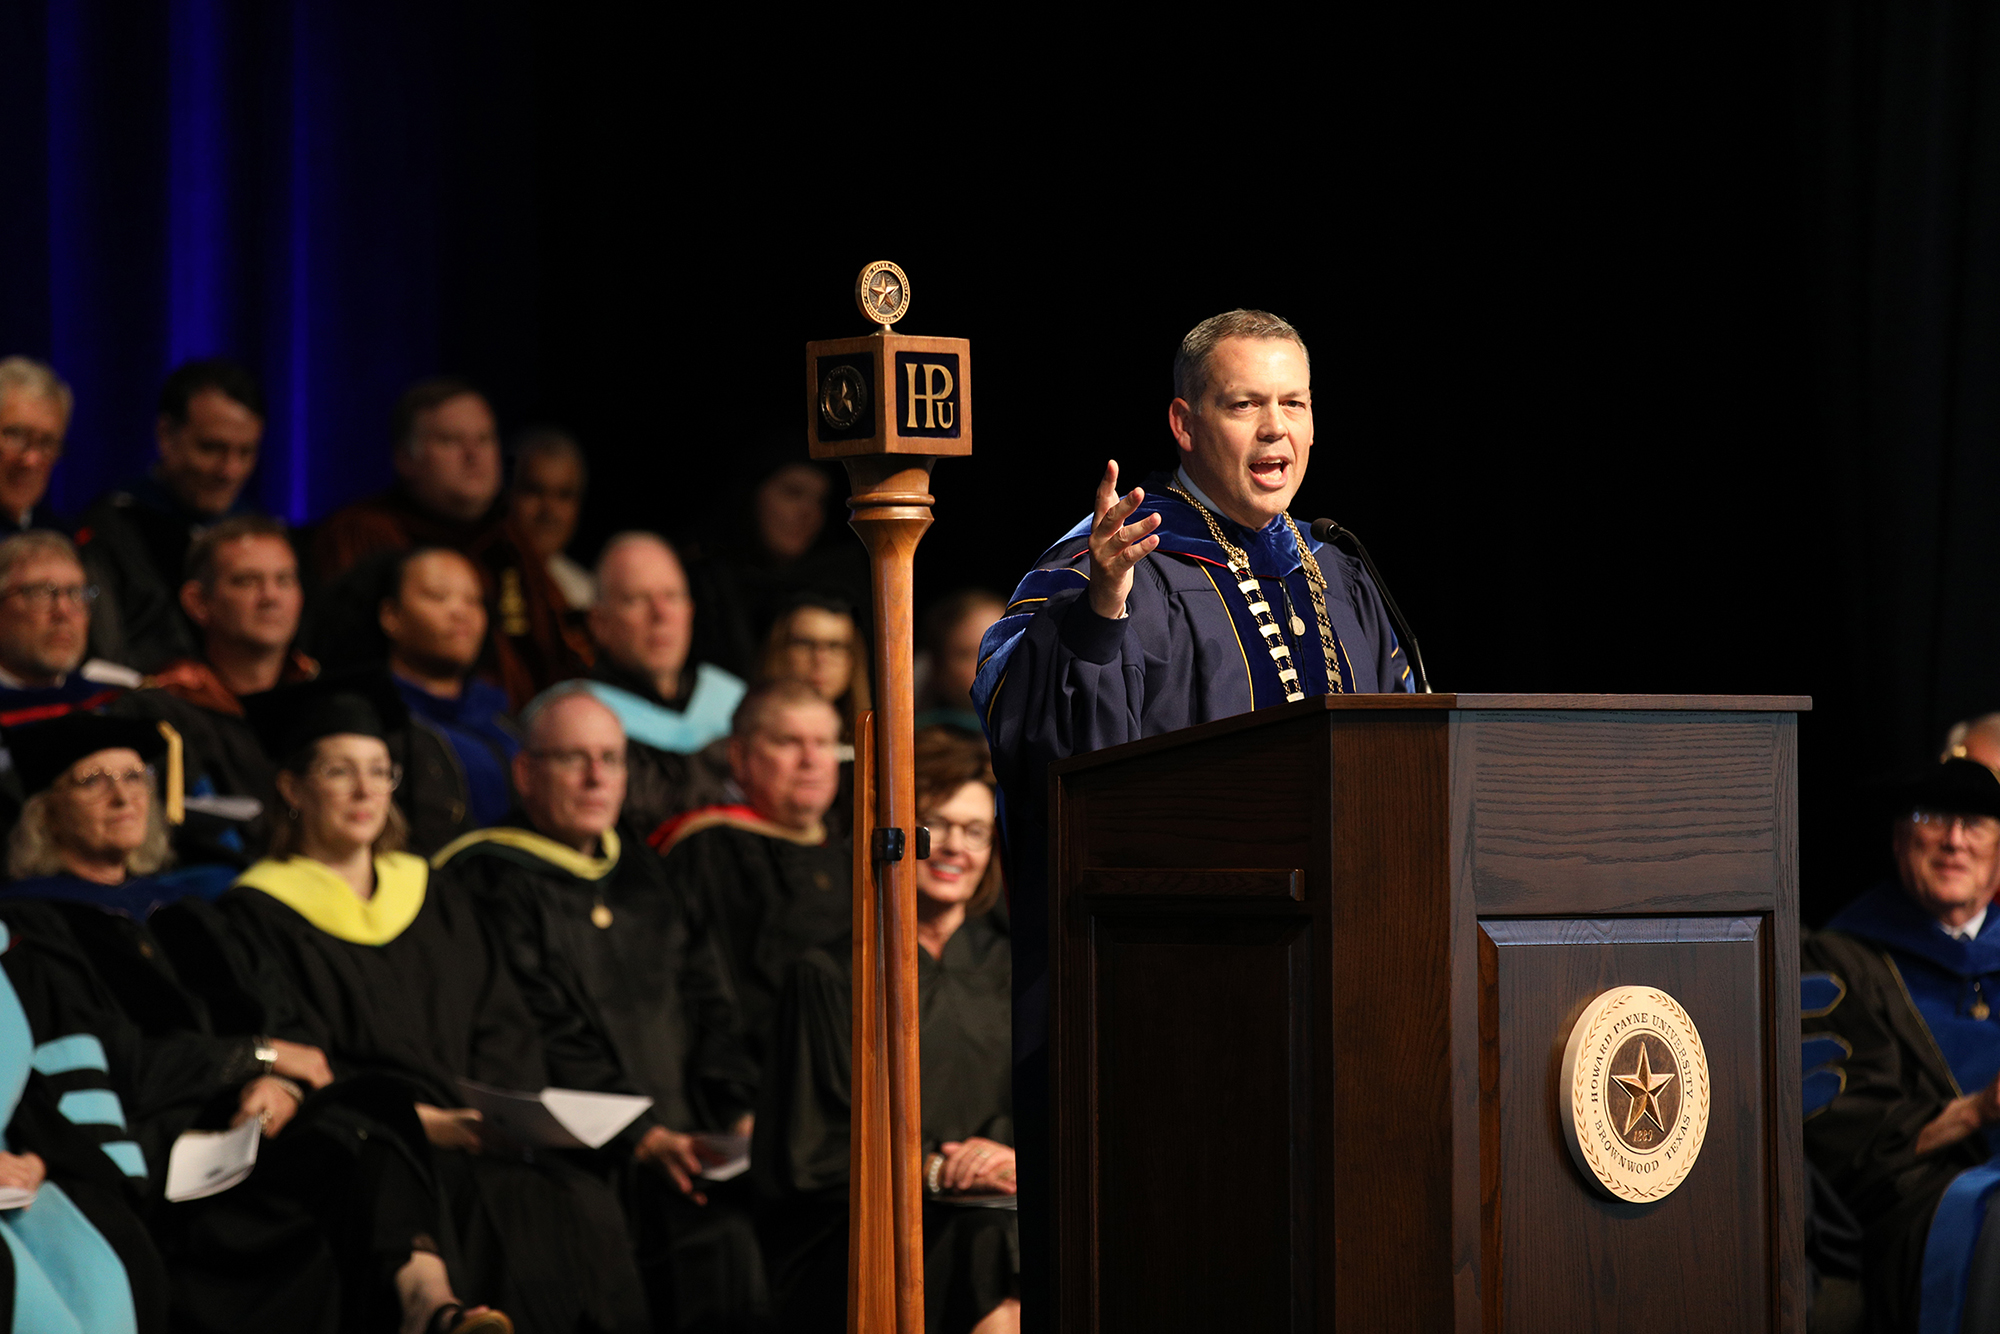 HPU welcomes largest number of new students in more than three decades (2013)</br>HPU celebrates the inauguration of Dr. Cory Hines '97, the institution's 20th president (2019)